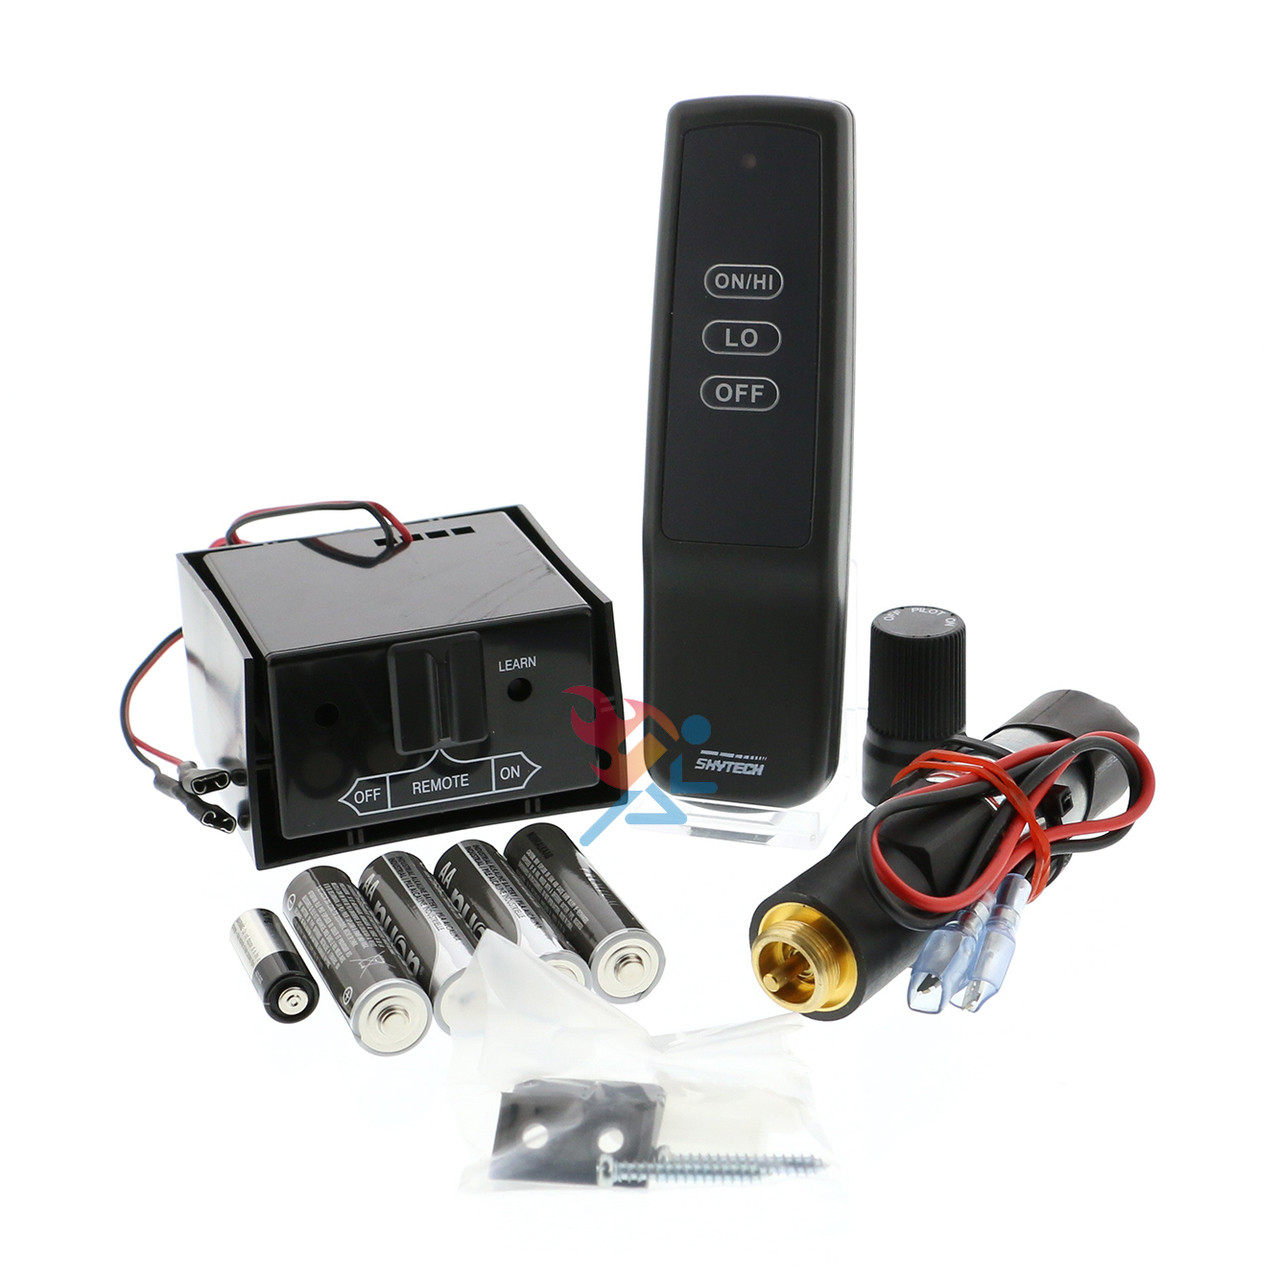 fireplaces control remote myfireplaceblower kit skytech for fireplace thermostat gas controls ts com